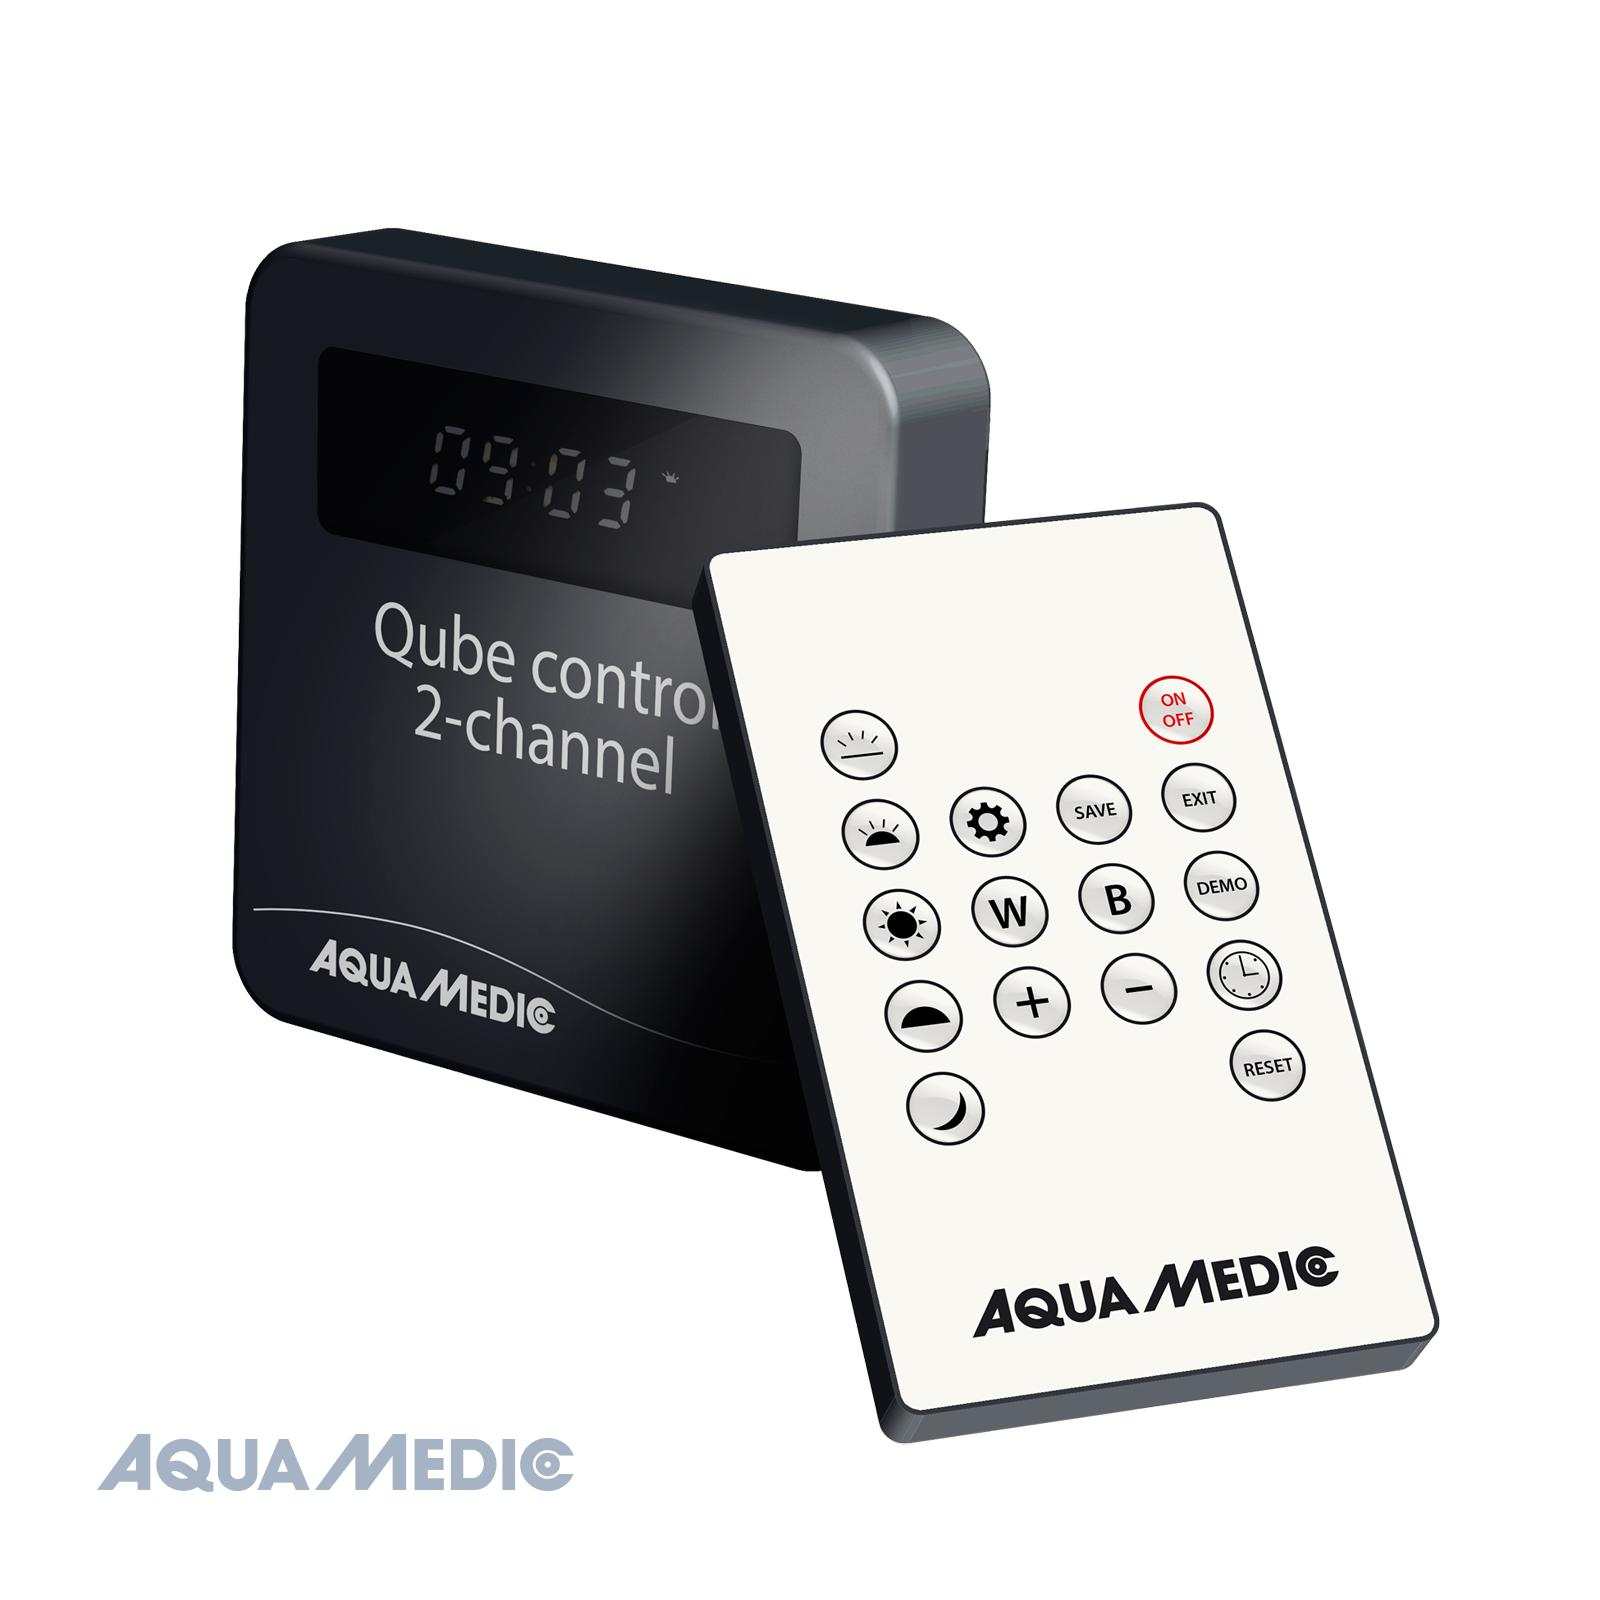 Aquamedic Qube Light Control